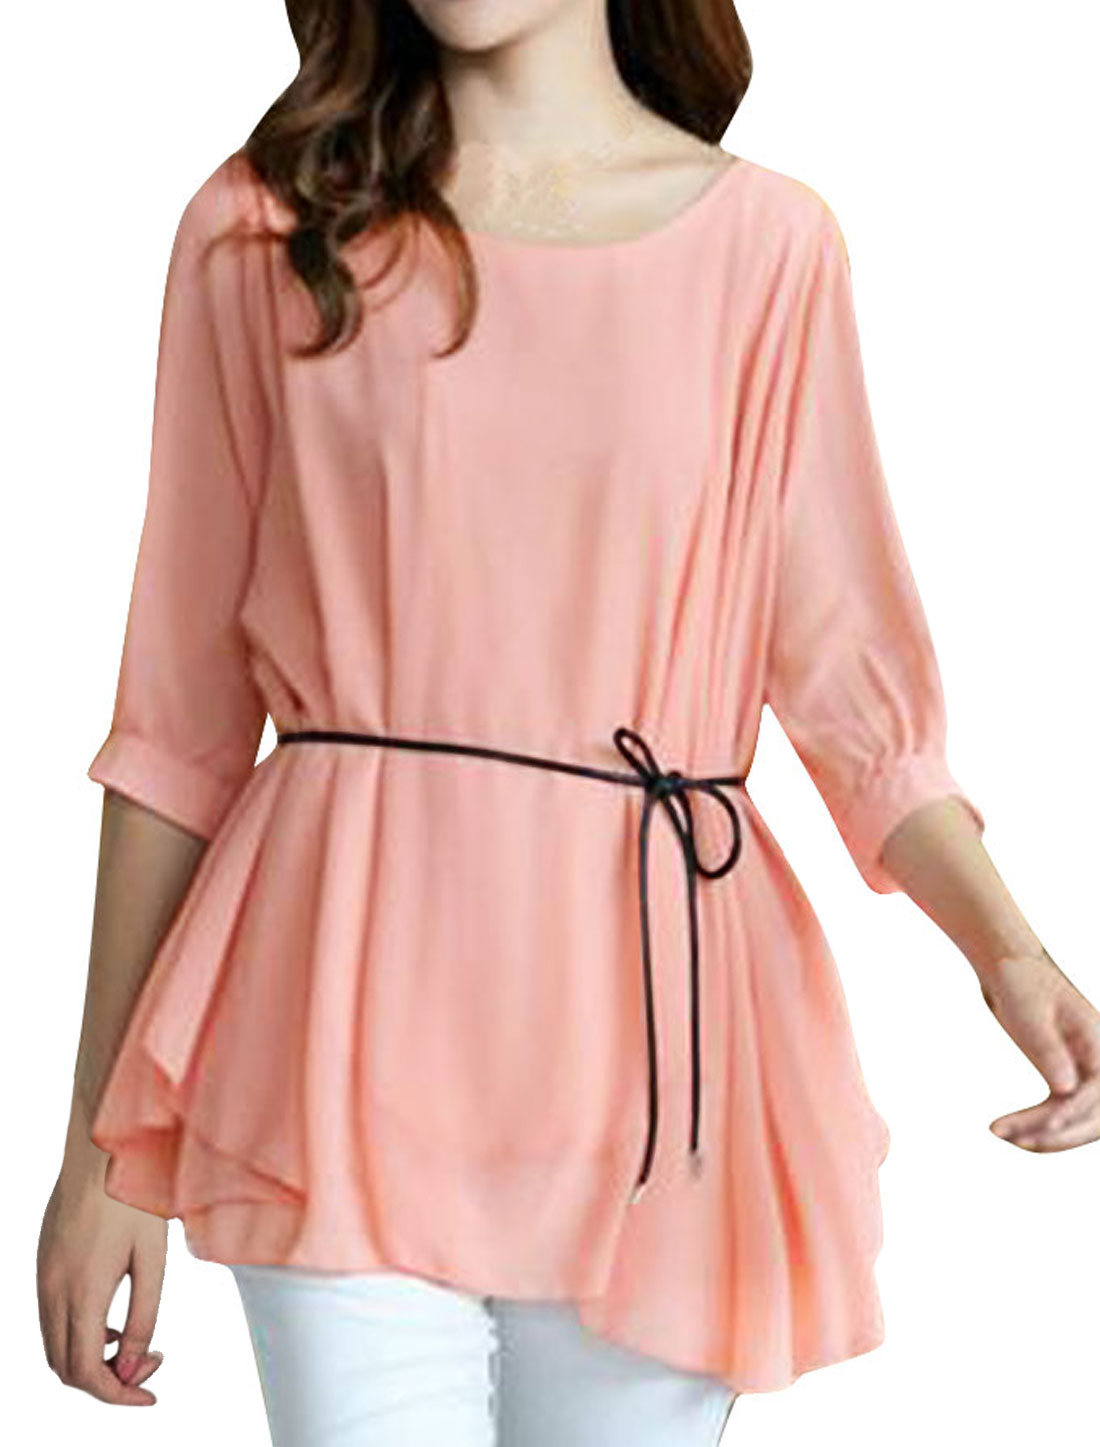 Women Half Sleeve with Waist String Blouse Pink S